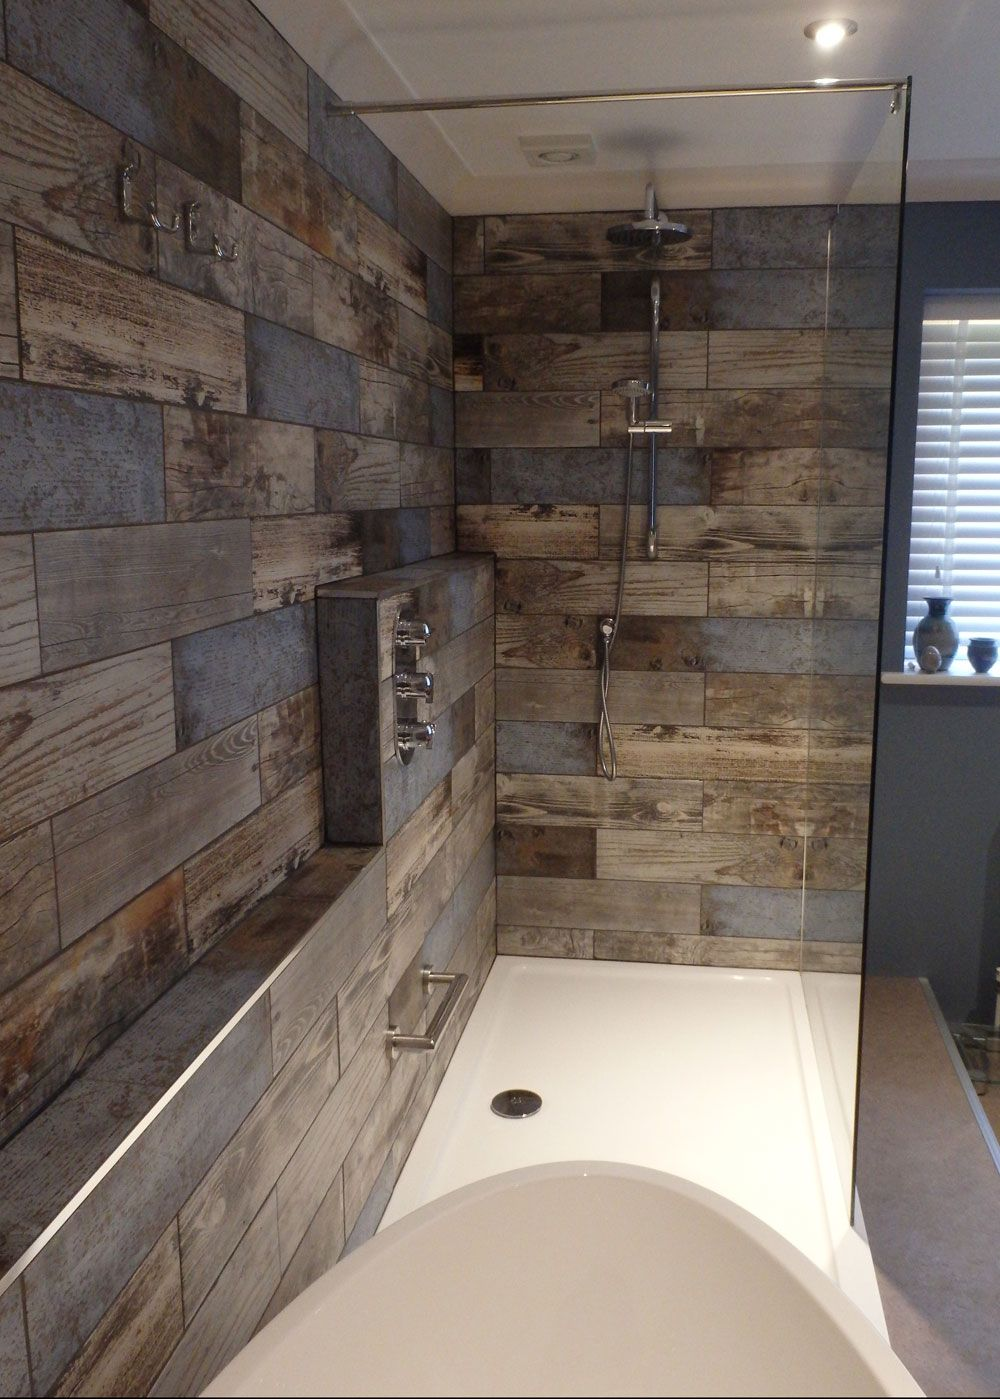 Wood effect flooring for bathrooms - Reclaimed Wood Effect Tiles